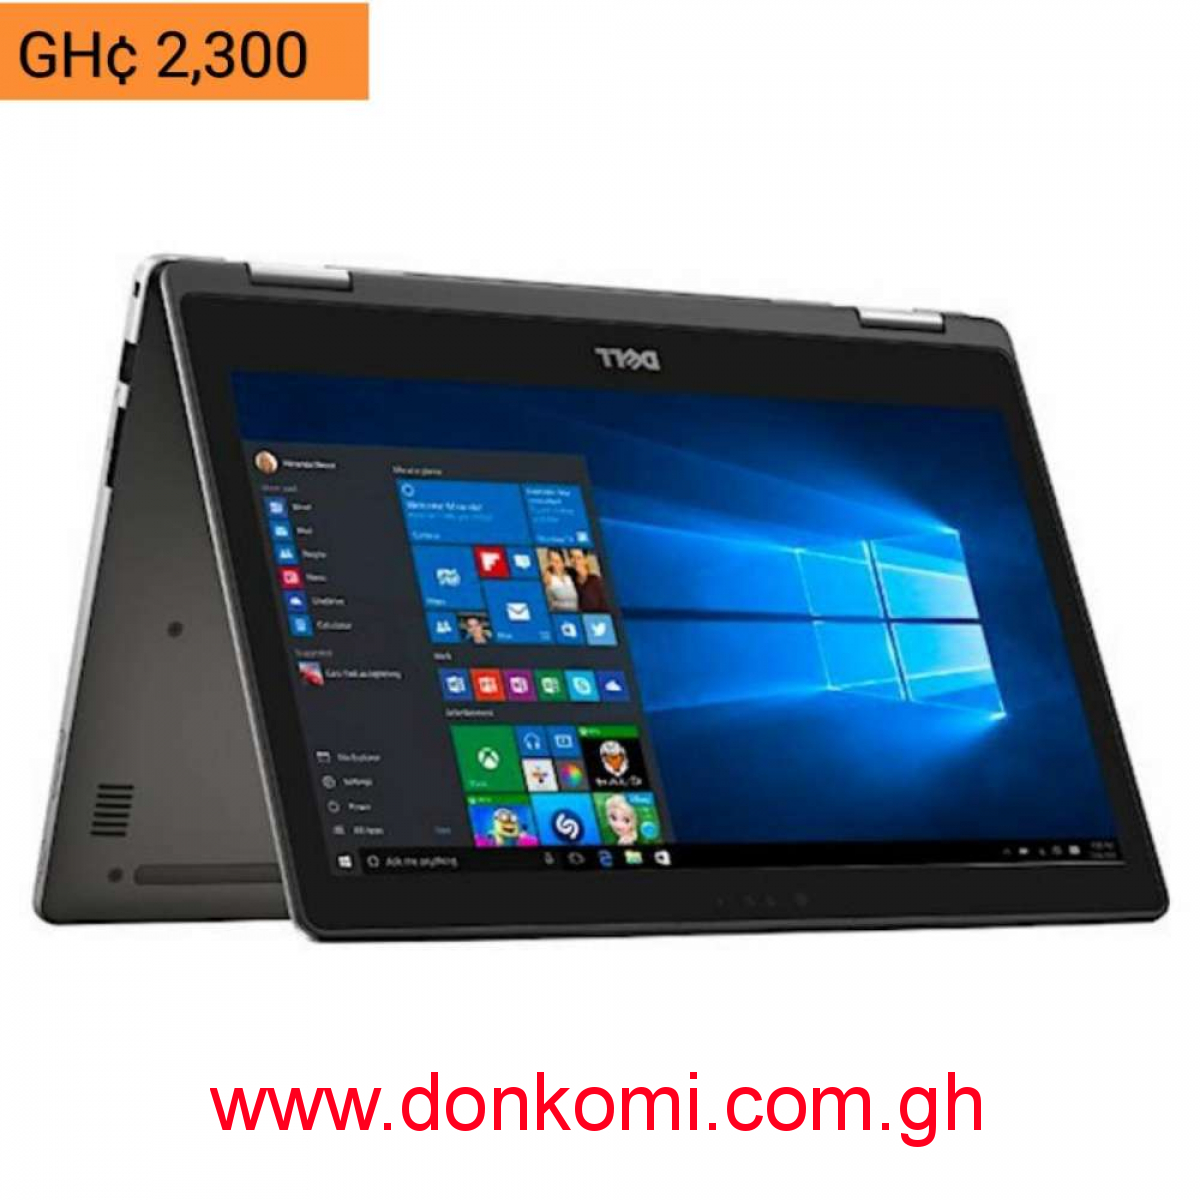 Dell Inspiron core i3 7th generation, 1TB HDD, 8GB RAM, touch, x360